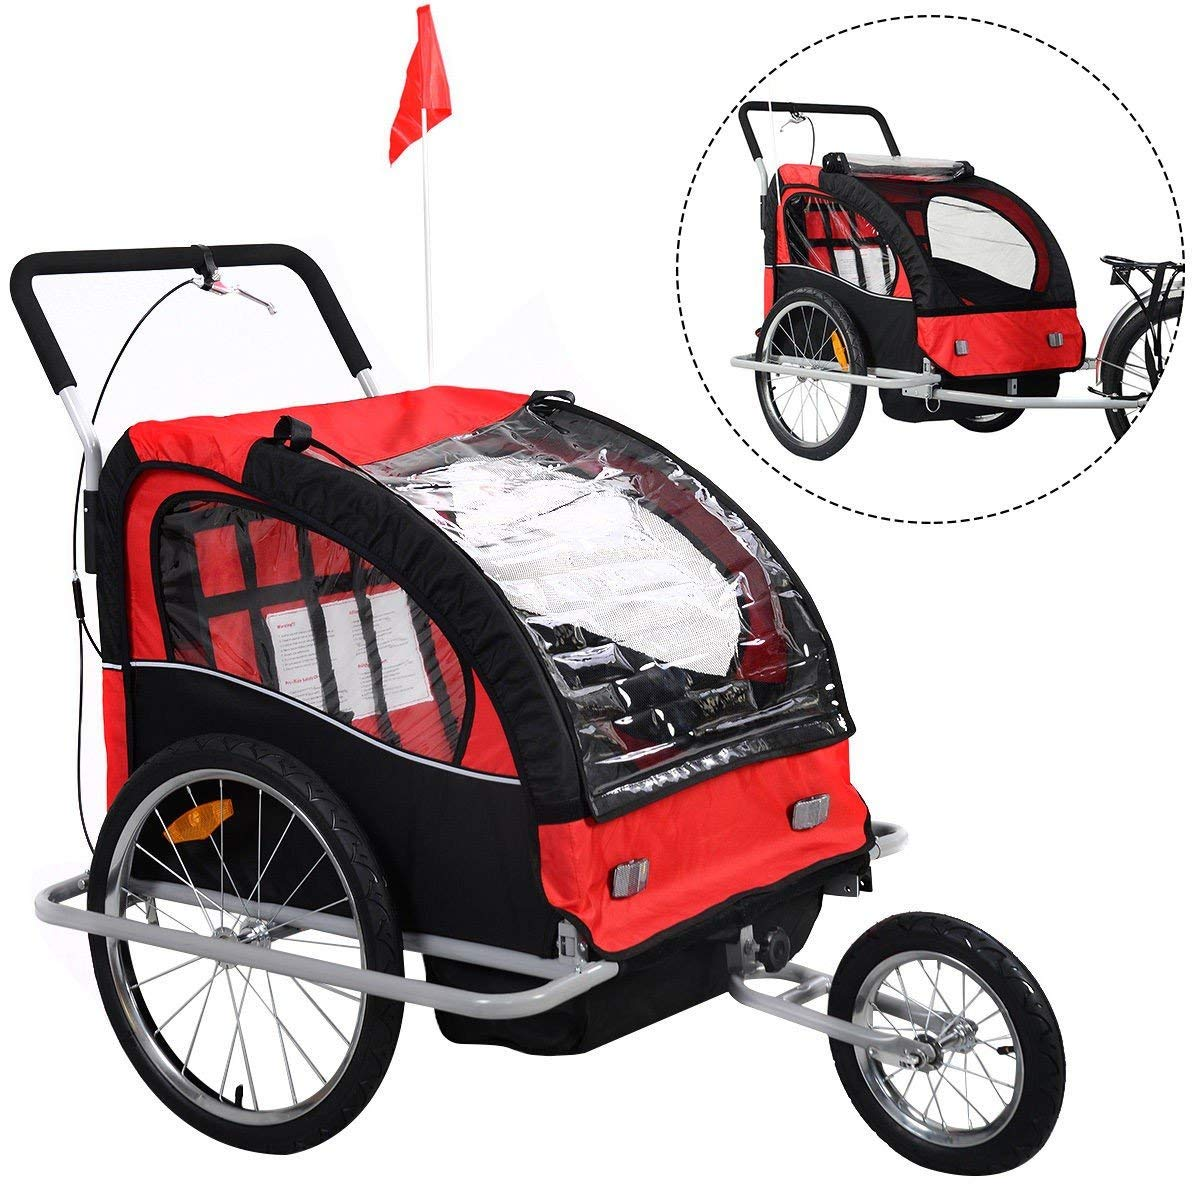 418716ef74c Get Quotations · 2 in 1 Double Child Baby Bike Trailer Bicycle Carrier Jogger  Stroller